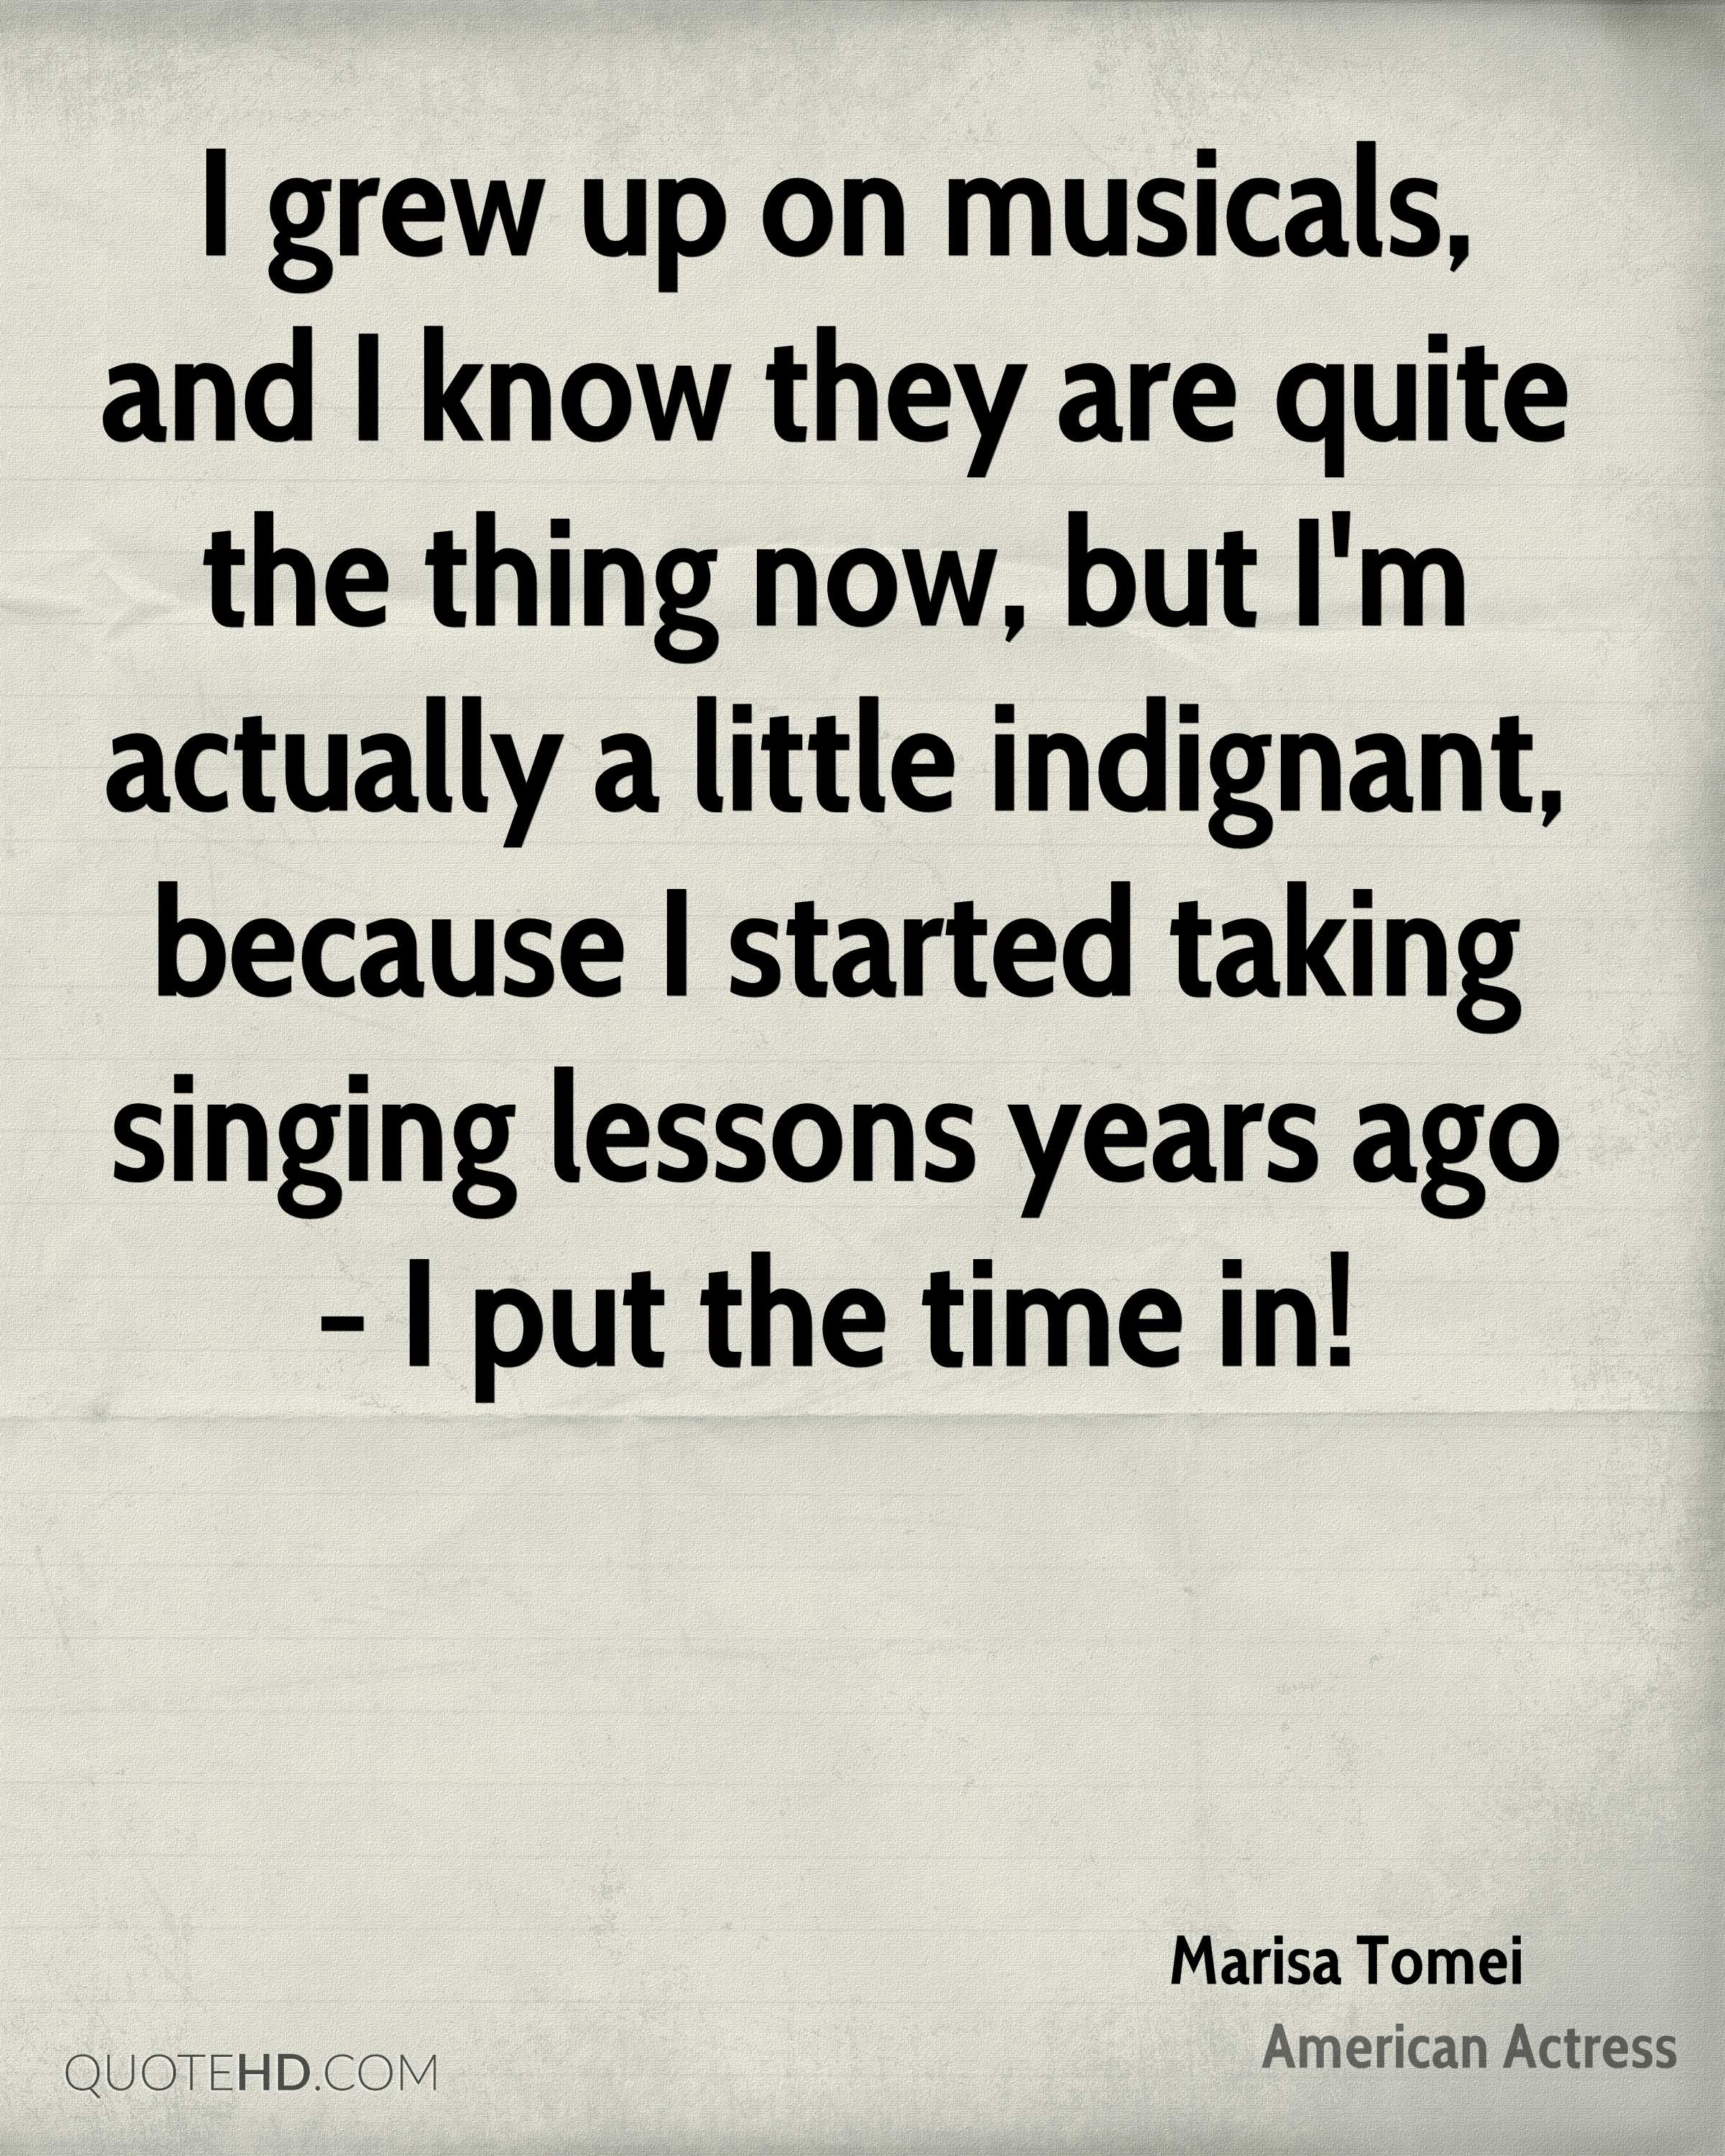 I grew up on musicals, and I know they are quite the thing now, but I'm actually a little indignant, because I started taking singing lessons years ago - I put the time in!